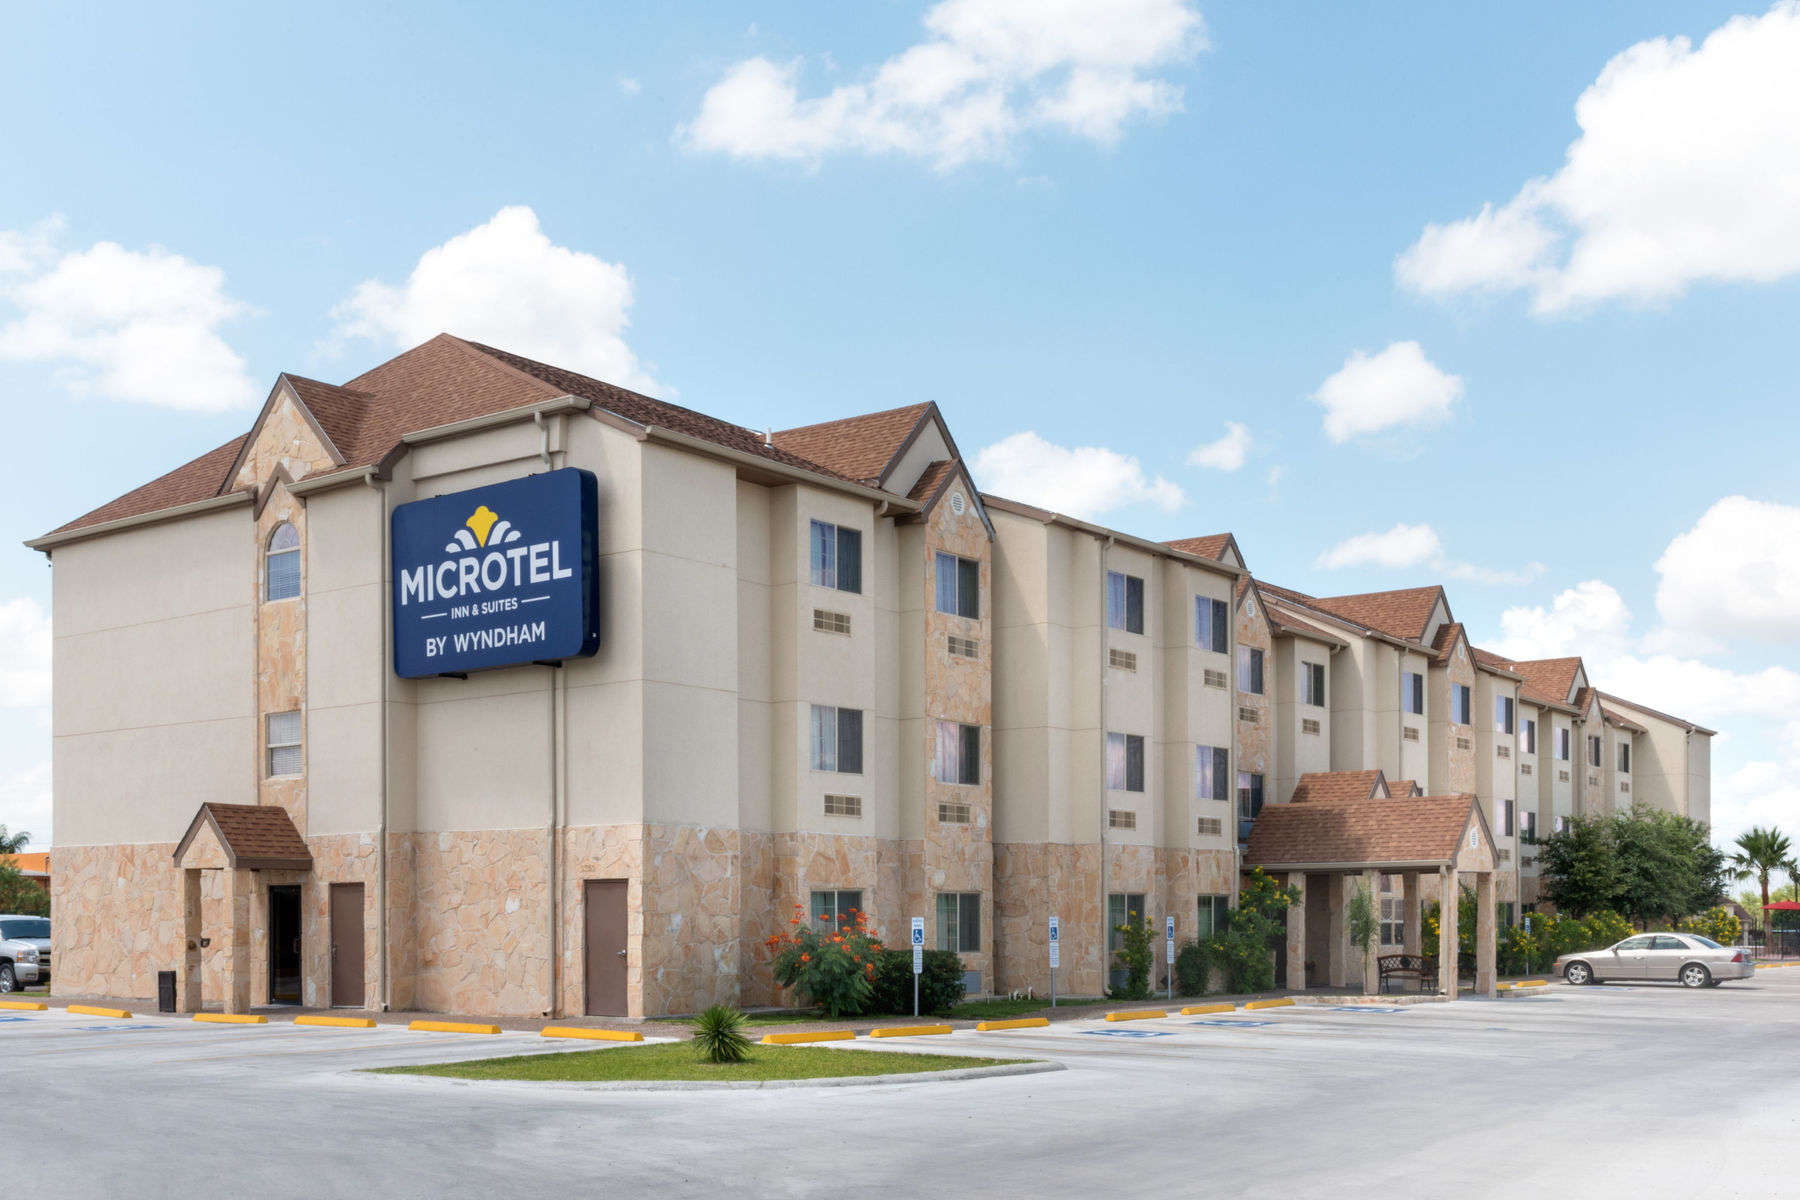 Microtel Inn & Suites by Wyndham Eagle Pass, Maverick